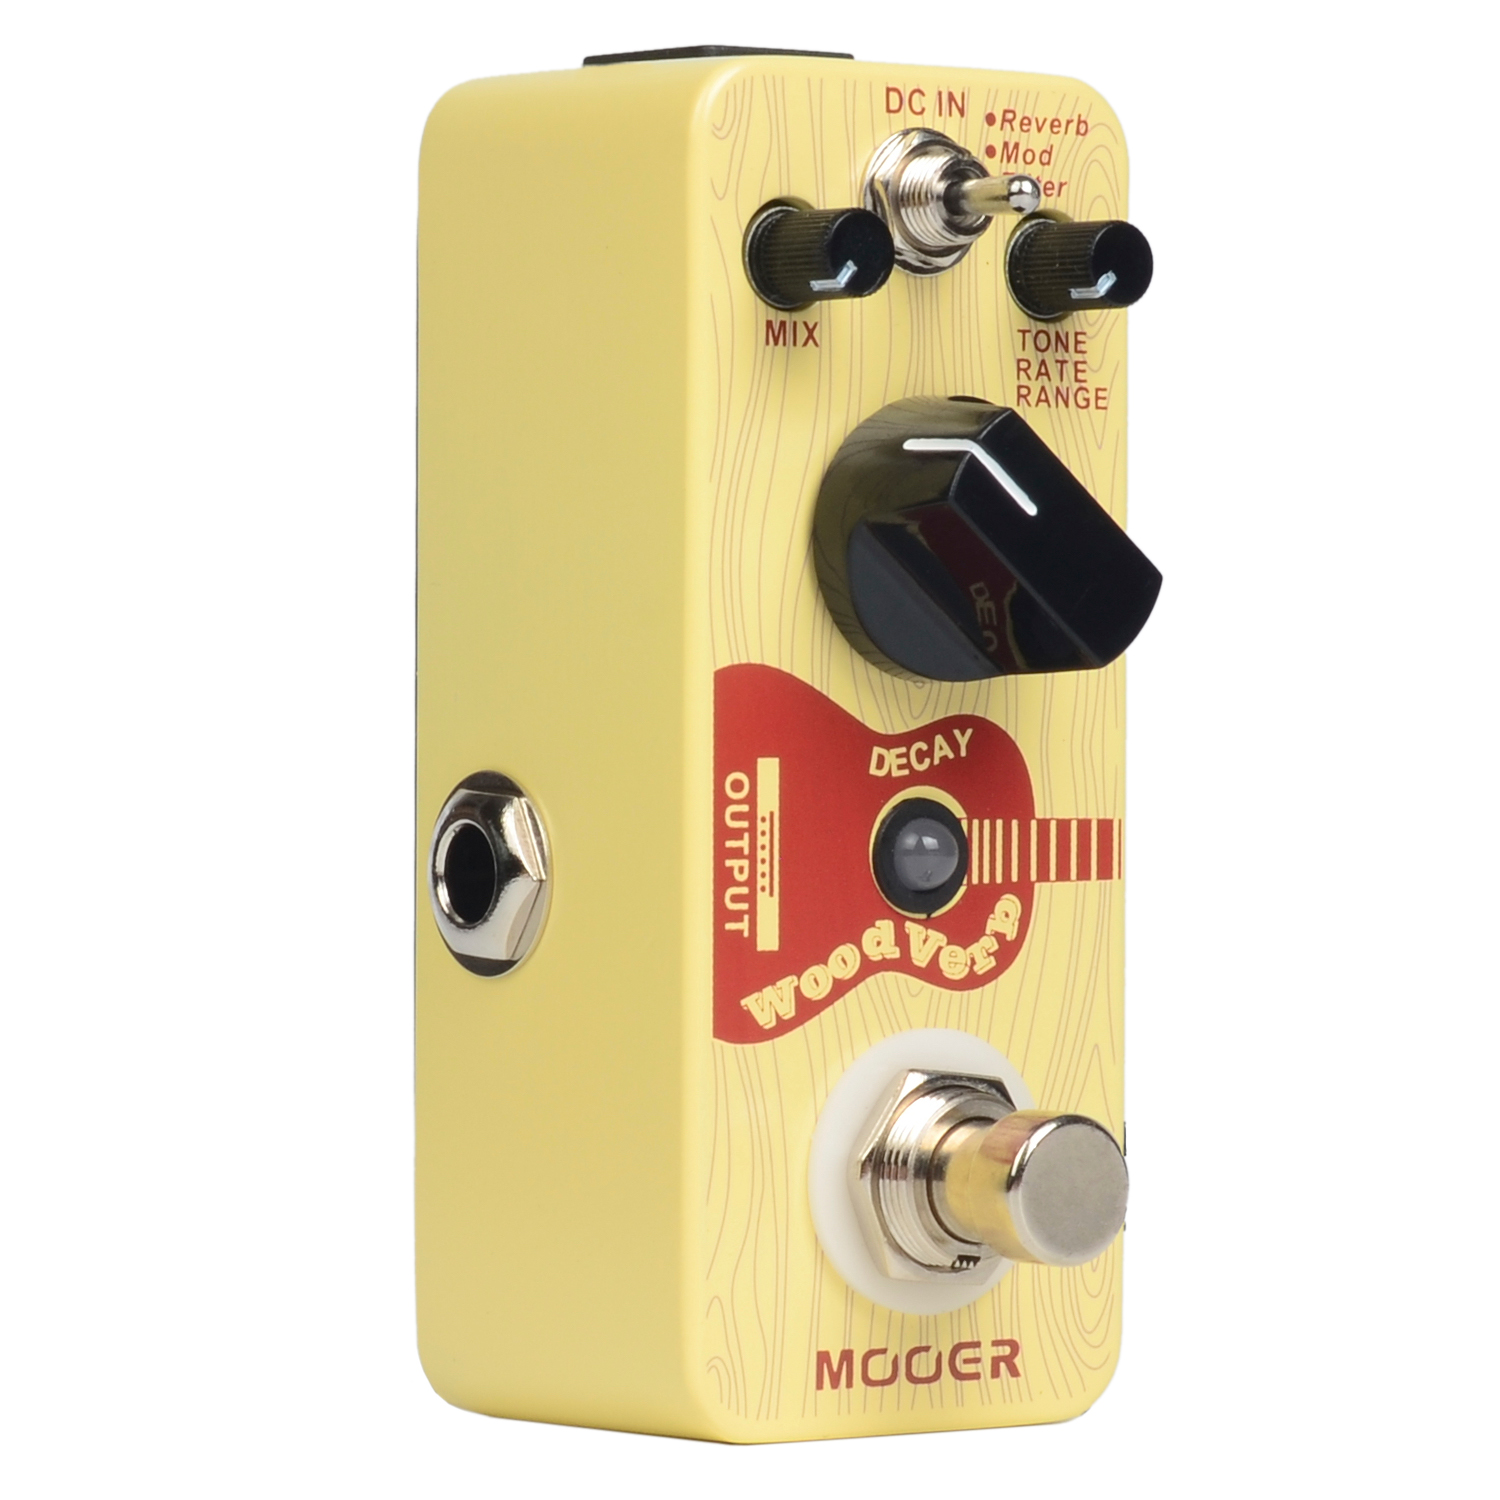 Mooer Wood Verb Reverb Digital Effects Acoustic Guitar Effect Pedal Tiny size True bypass MRV3 aroma aov 3 ocean verb digital reverb electric guitar effect pedal mini single effect with true bypass